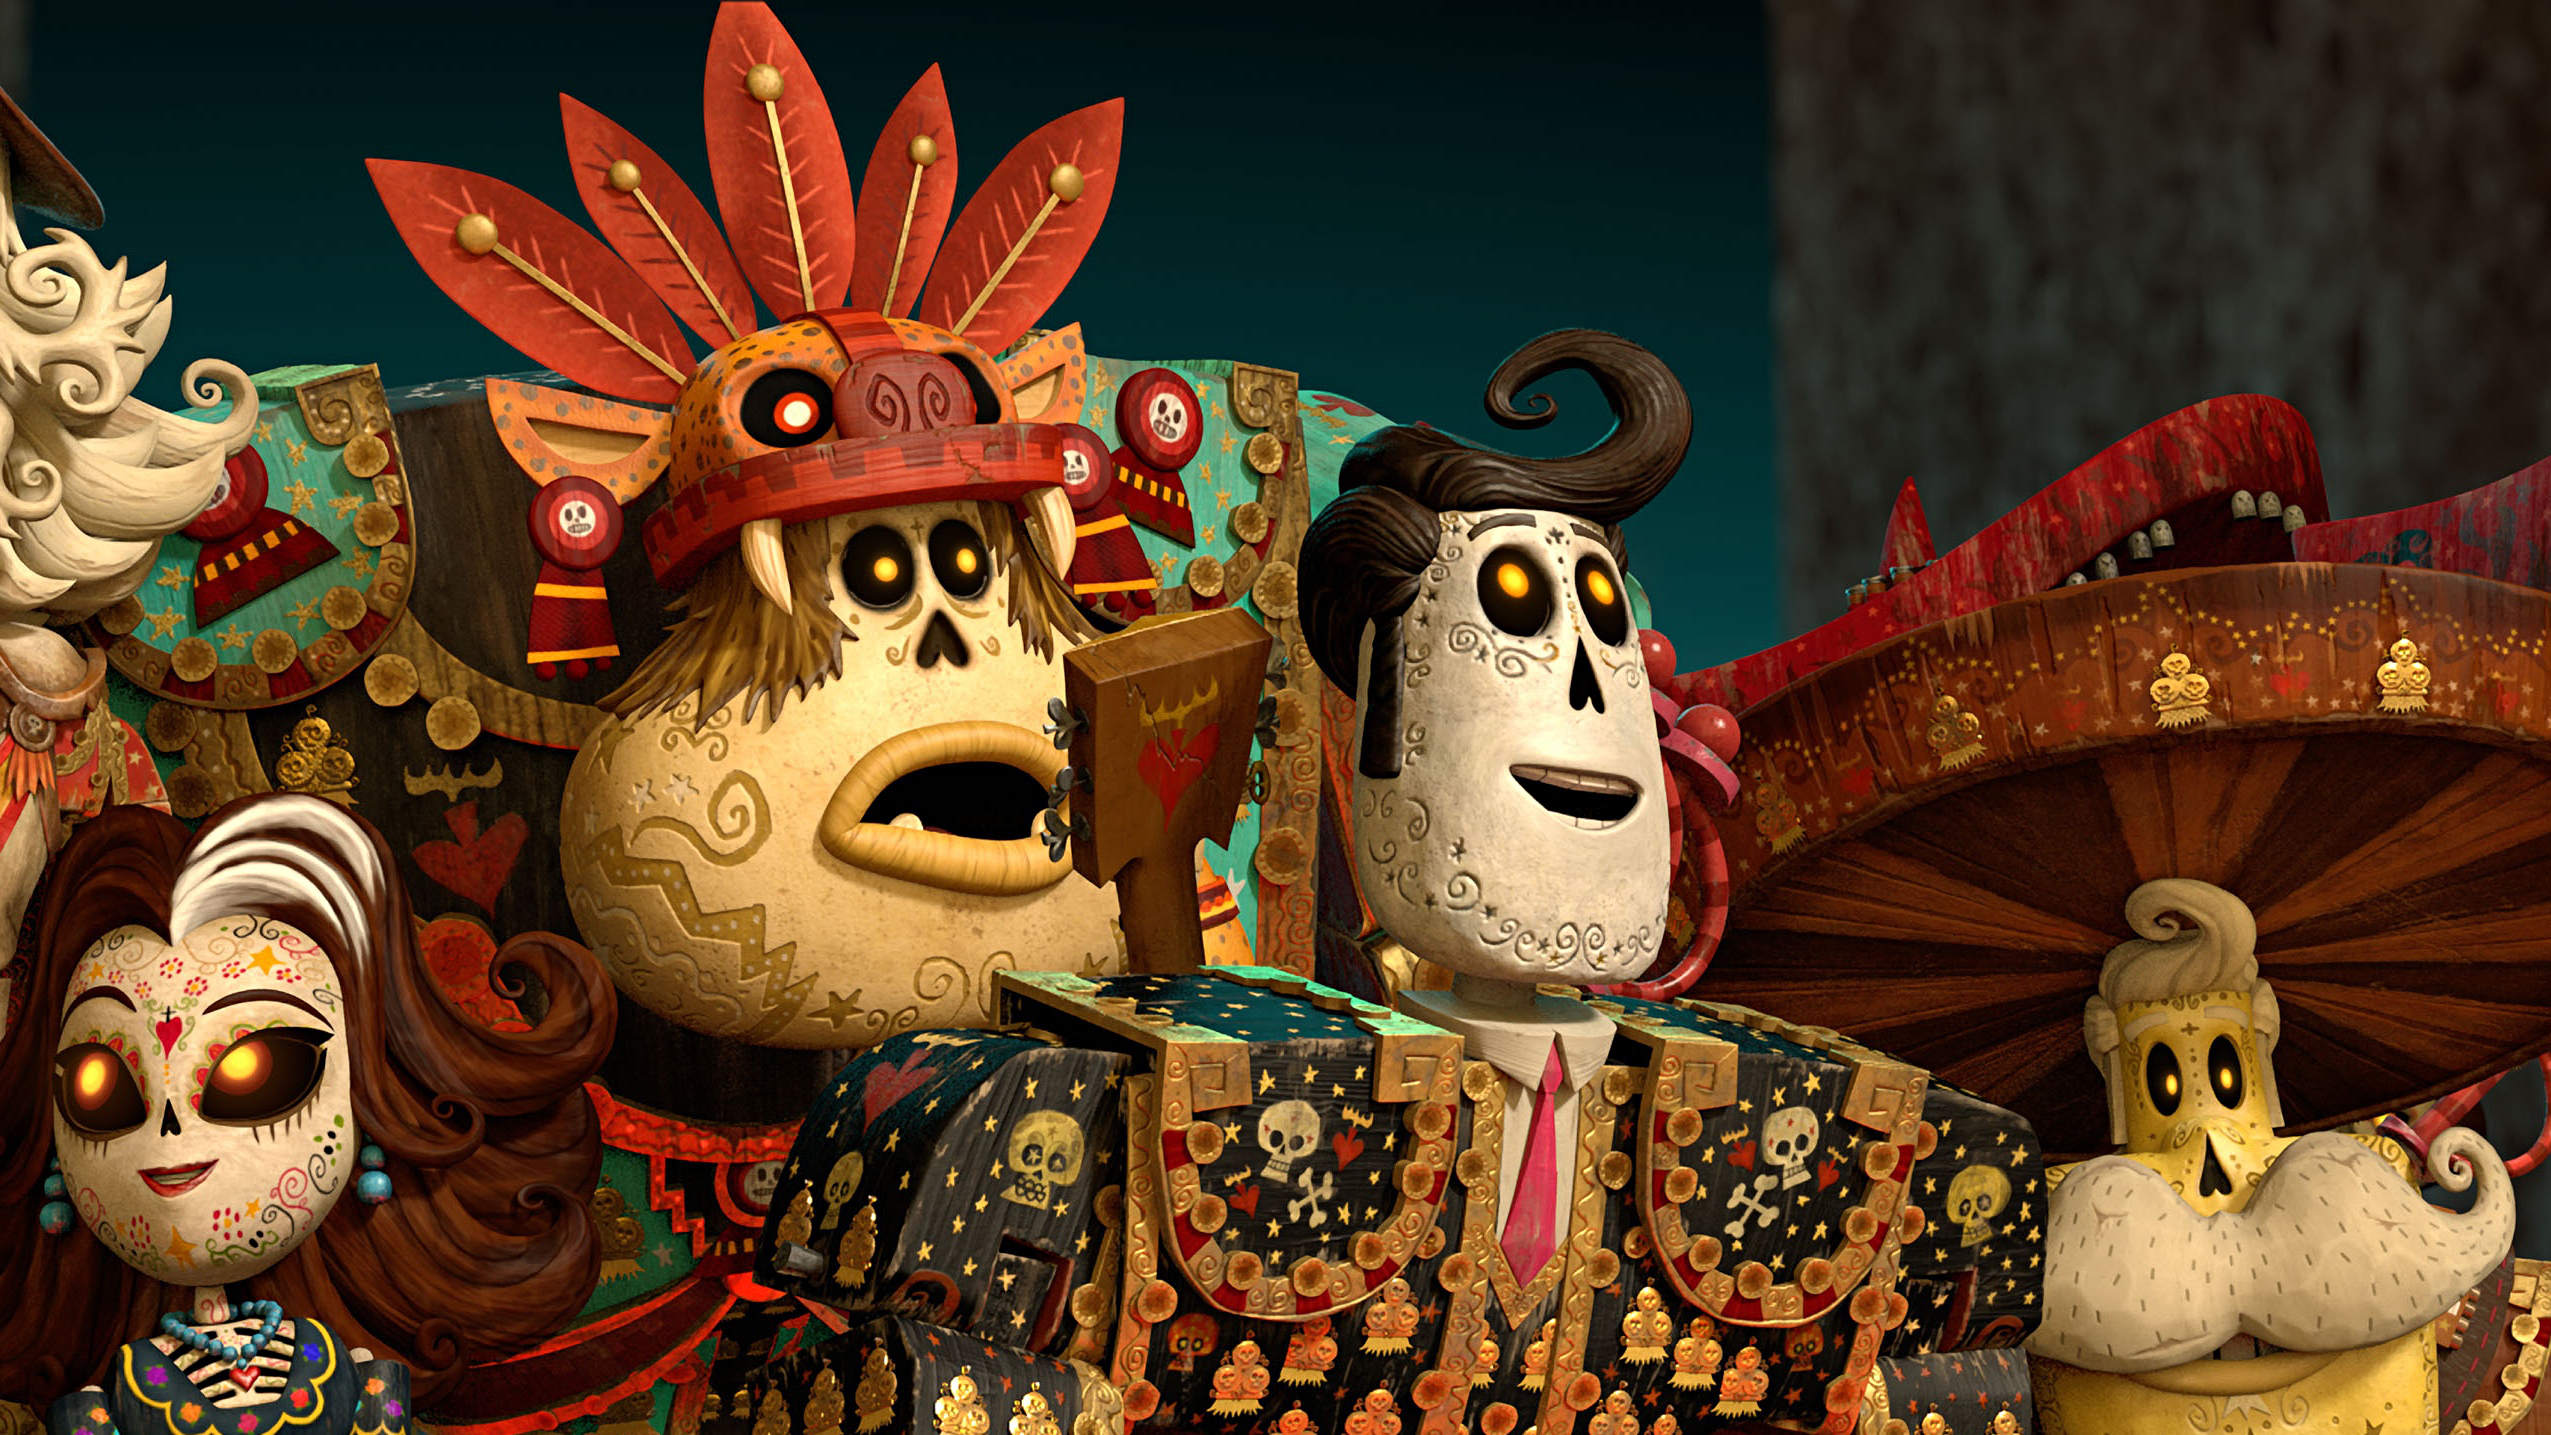 The book of life movie hd wallpapers all hd wallpapers for Book of life characters names